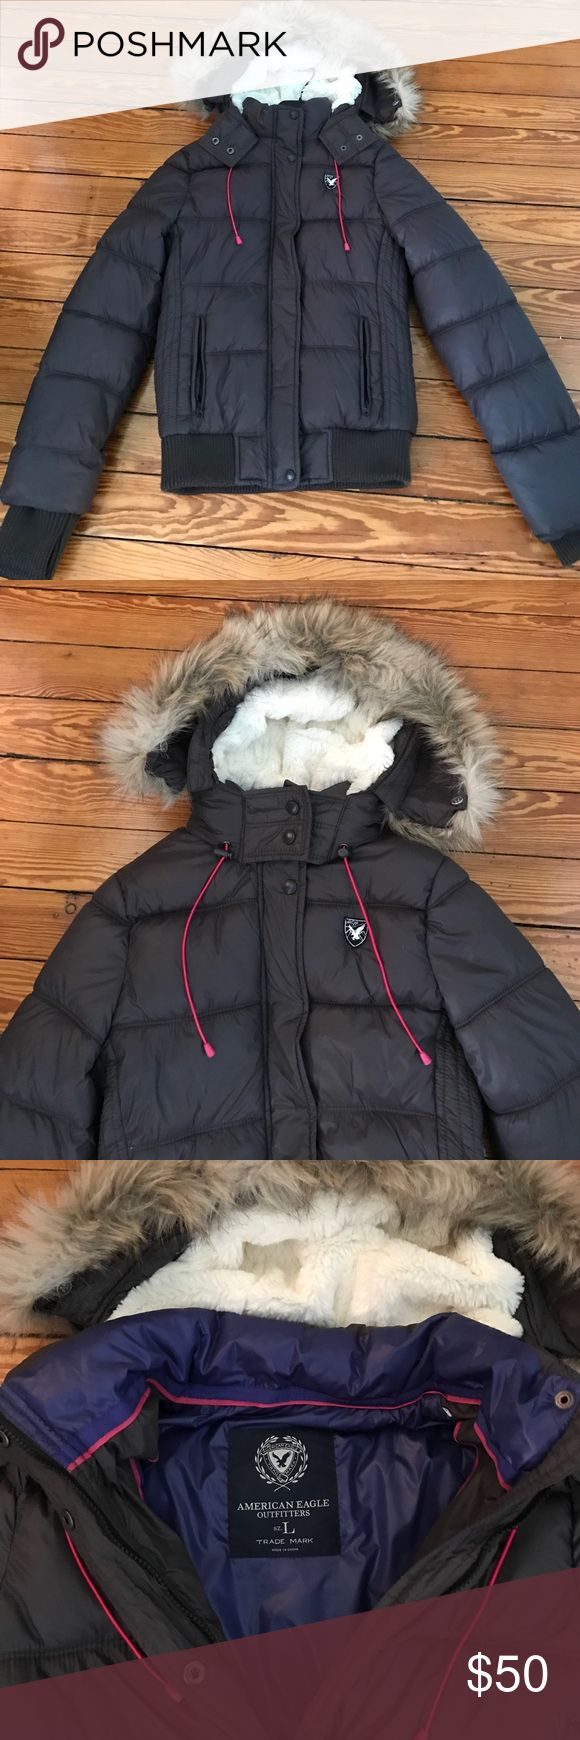 Gray American Eagle puff jacket large never worn New without tags gray American Eagle puff jacket with warm fur lined hood.  Hood is NOT REMOVABLE but dark fur trim around hood is. American Eagle Outfitters Jackets & Coats